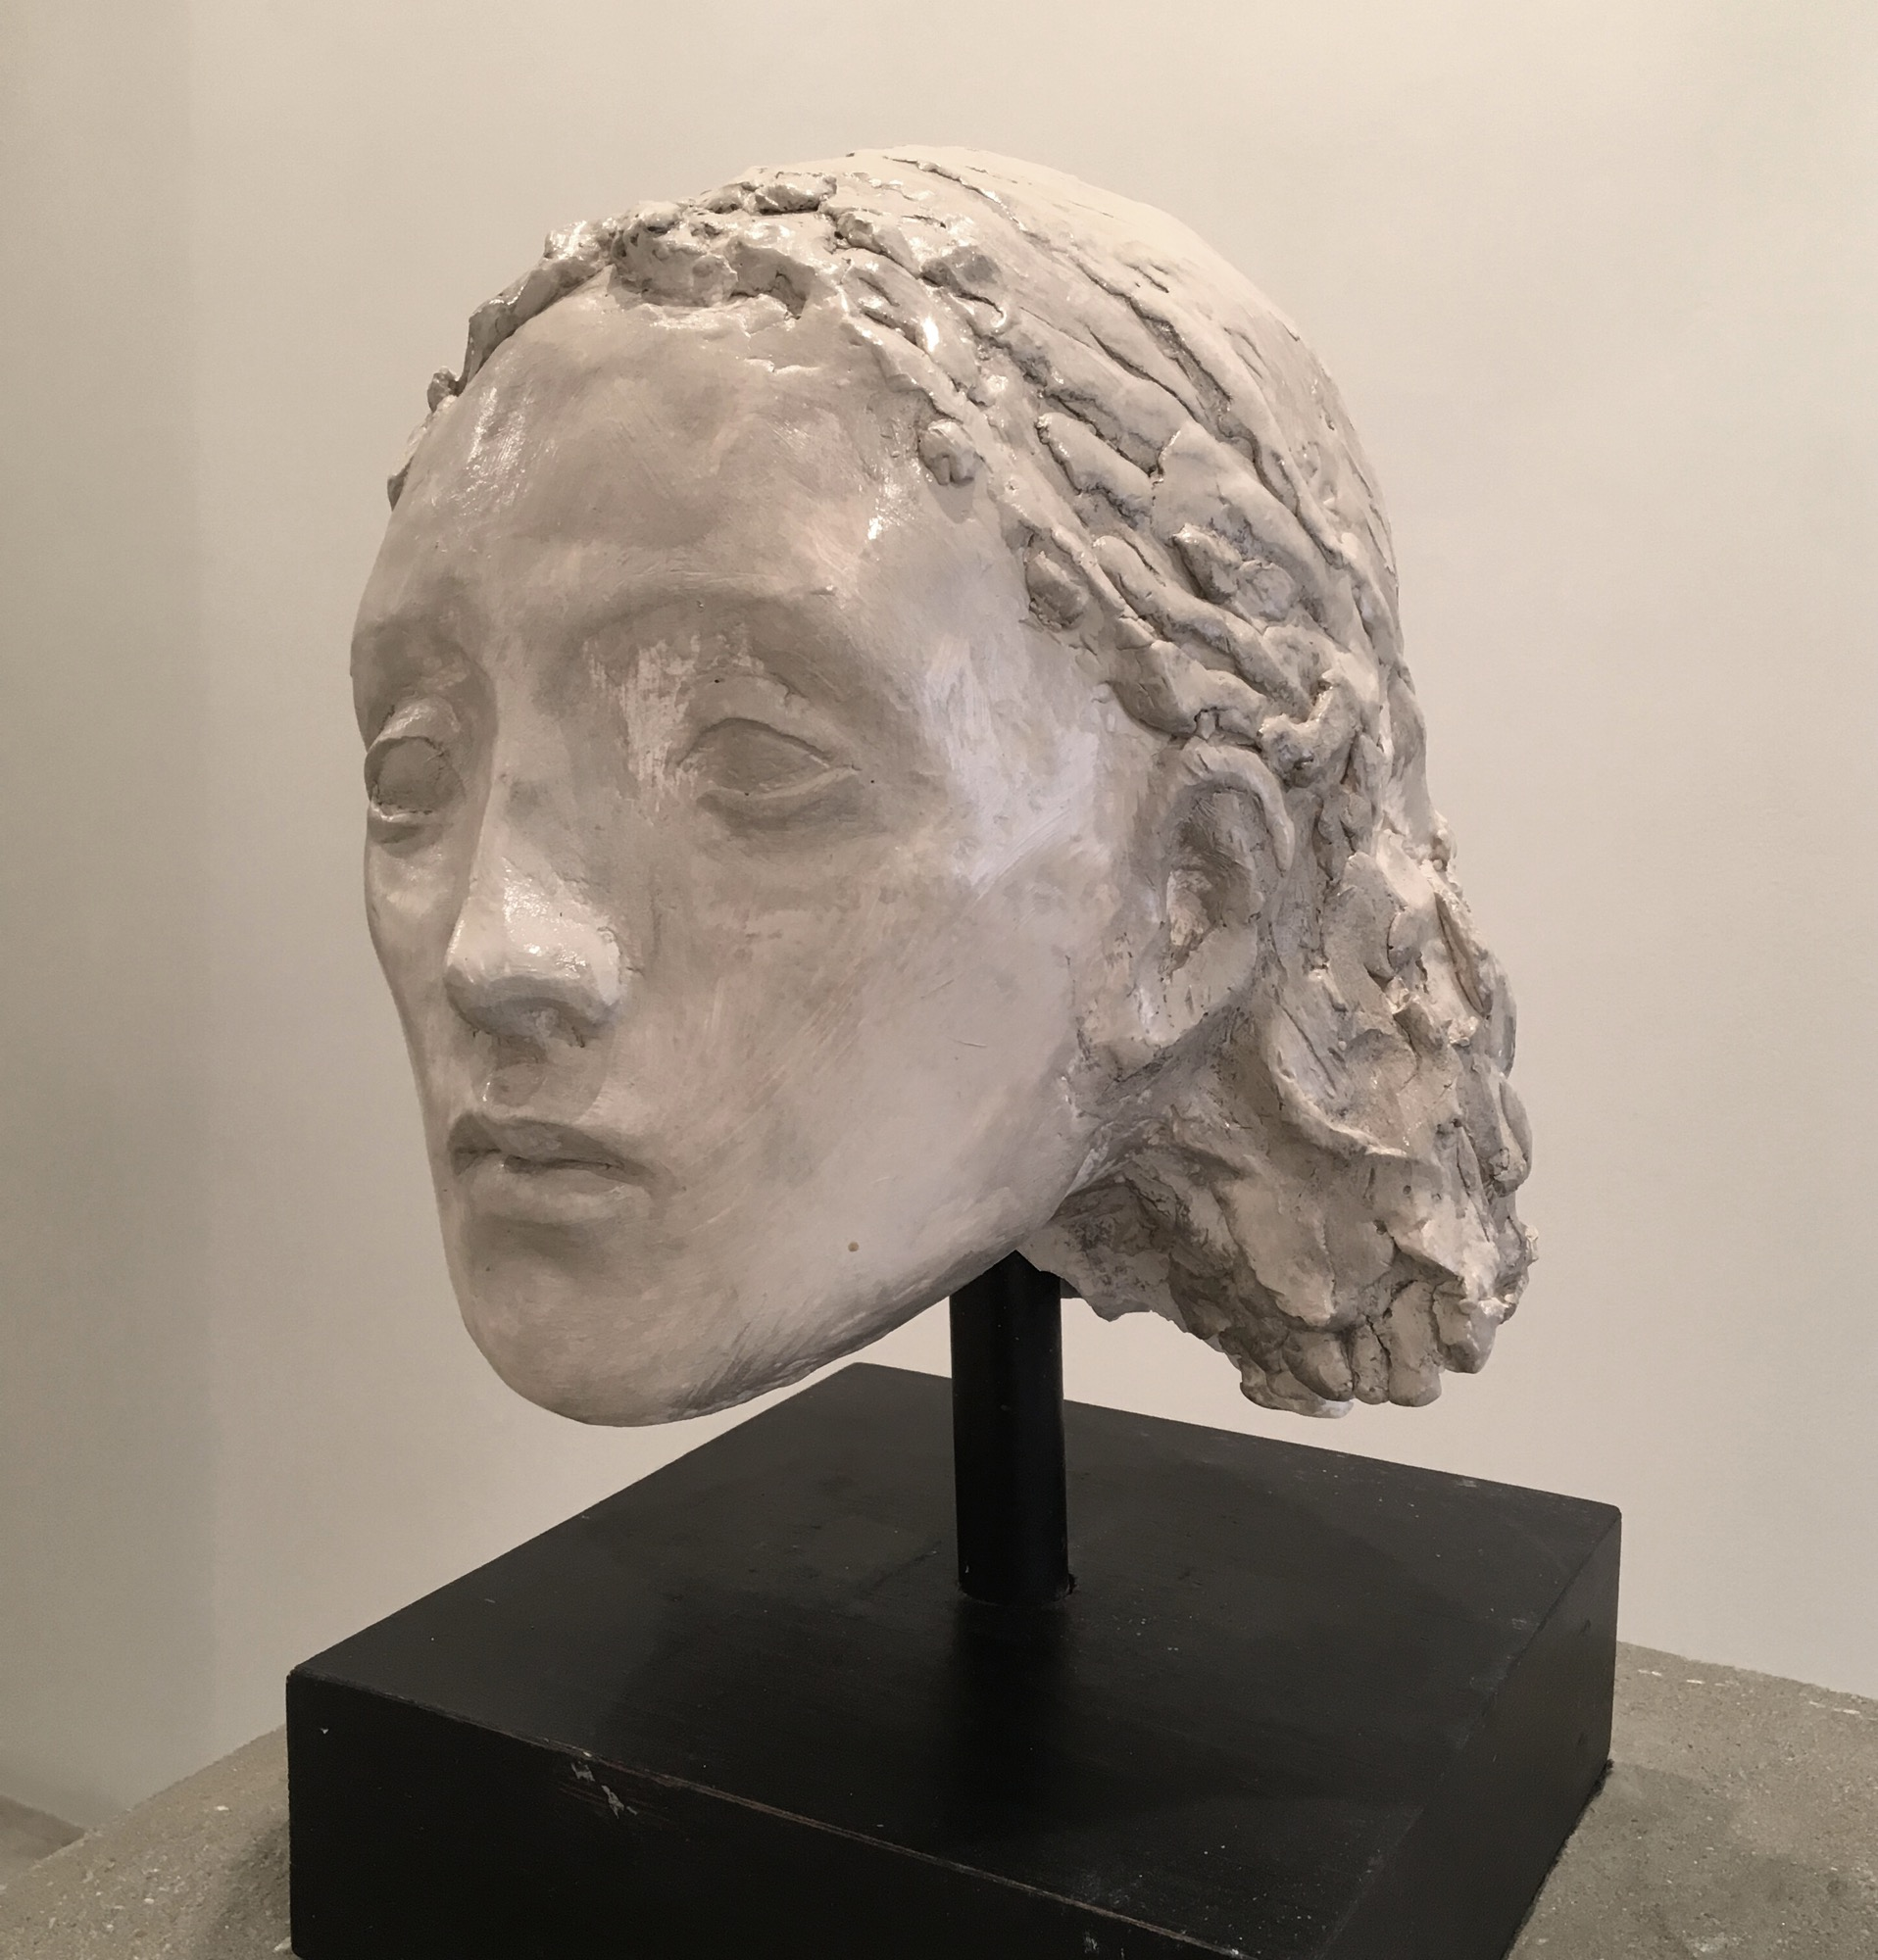 Raymond Han    Untitled , 2015-2017  2 x 10 1/4 x 8 3/4 inches  30.5 x 26 x 22.2 cm  Limited edition plaster casts available through the Estate of Raymond Han